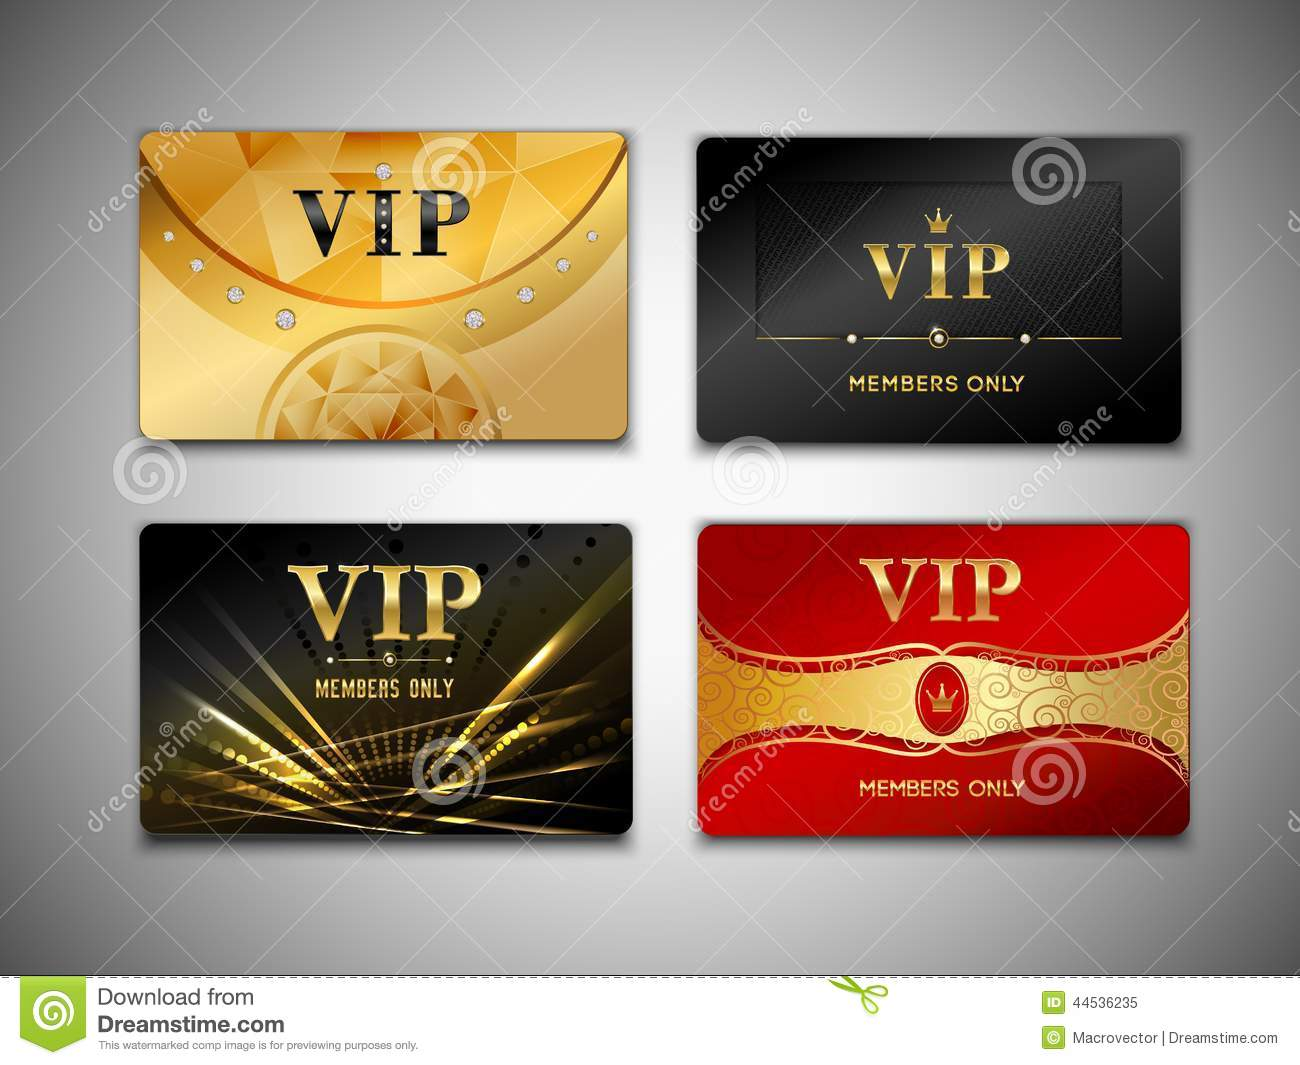 how to make vip cards